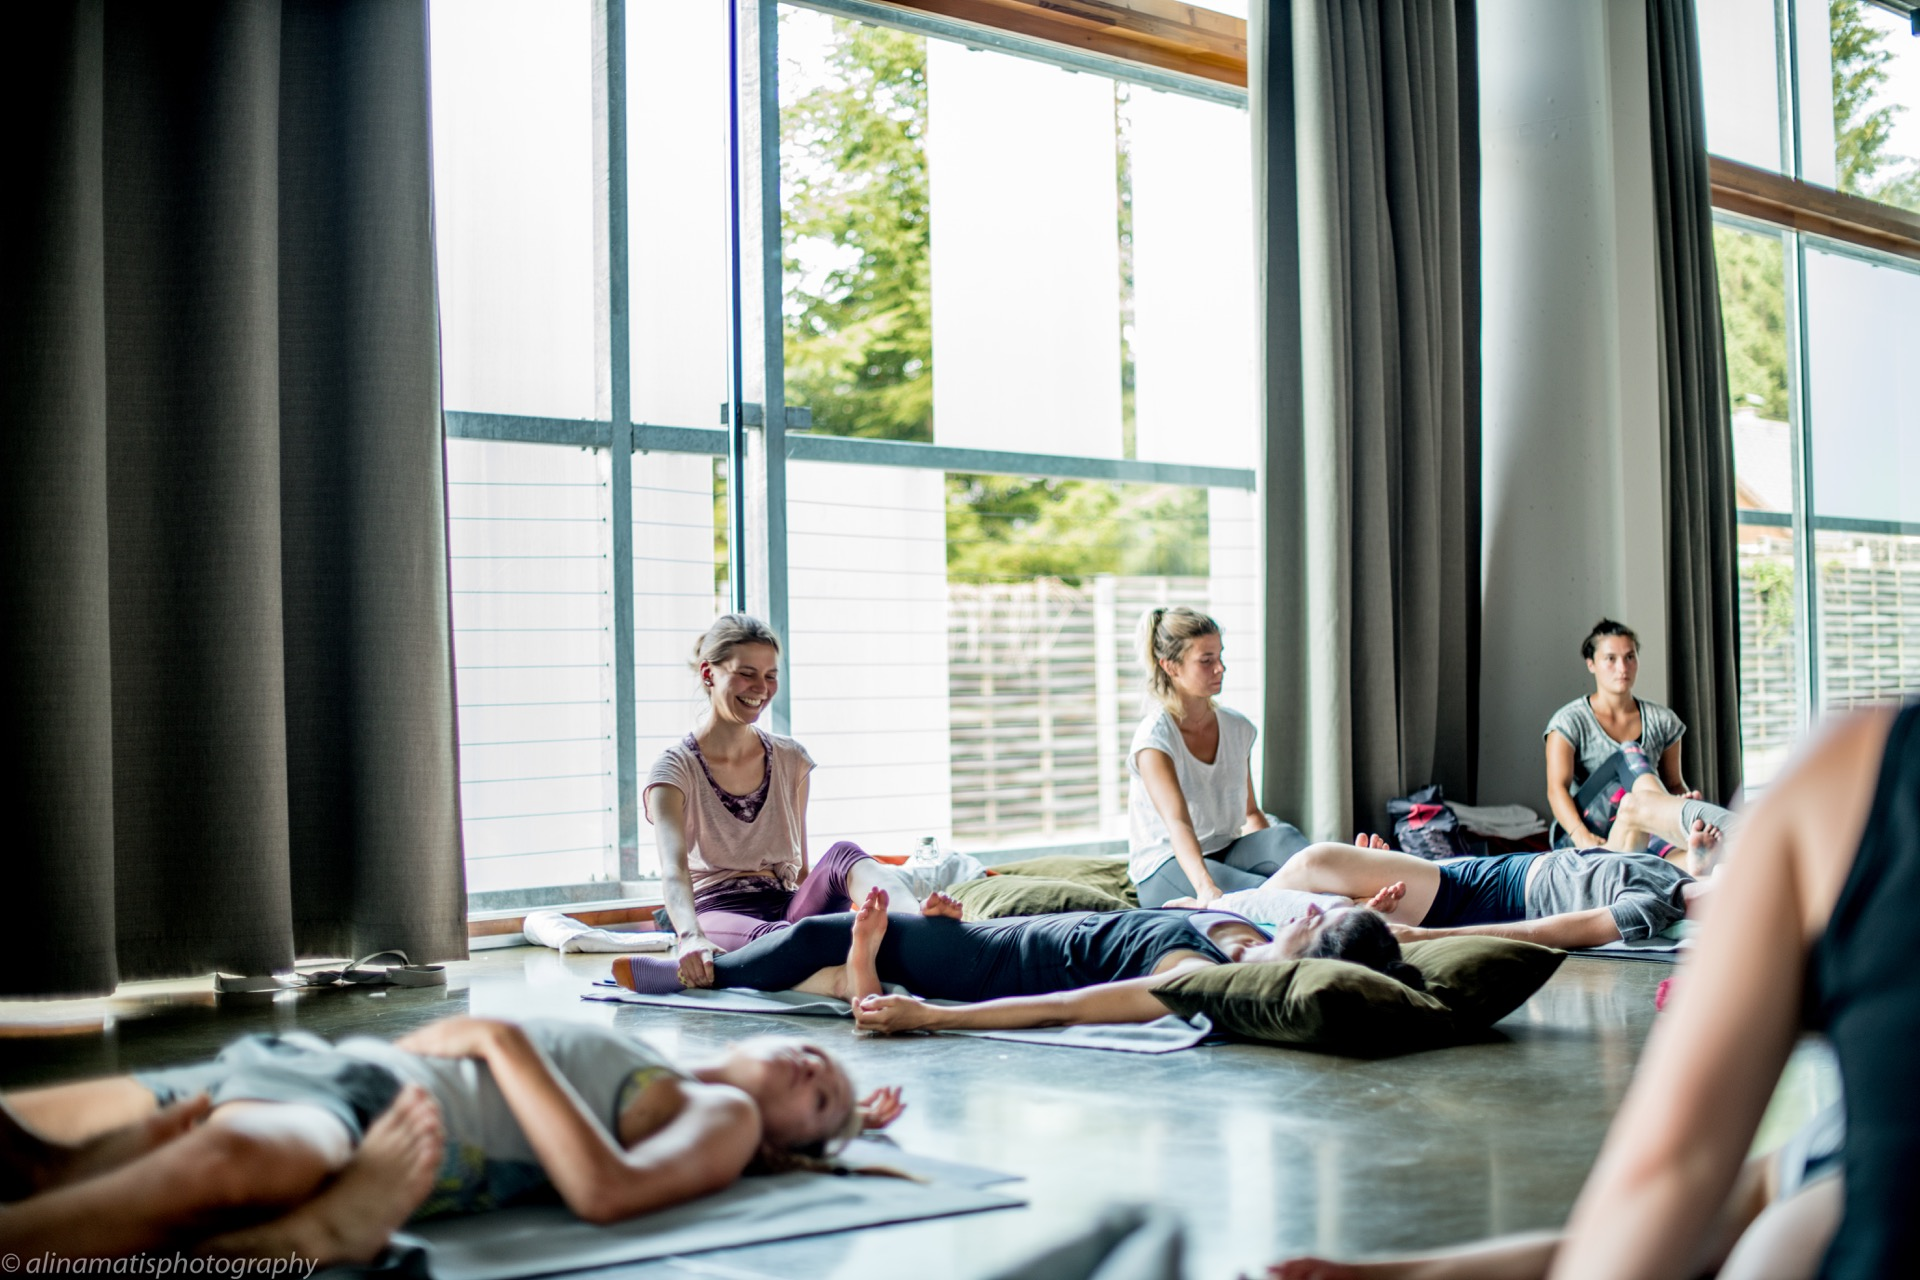 Hie-Kim-Friends-2018-Yoga-Retreat-Alina-Matis-Photography-103 - Hie Kim Yoga - Yoga Retreat - Yoga Workshops und Reisen